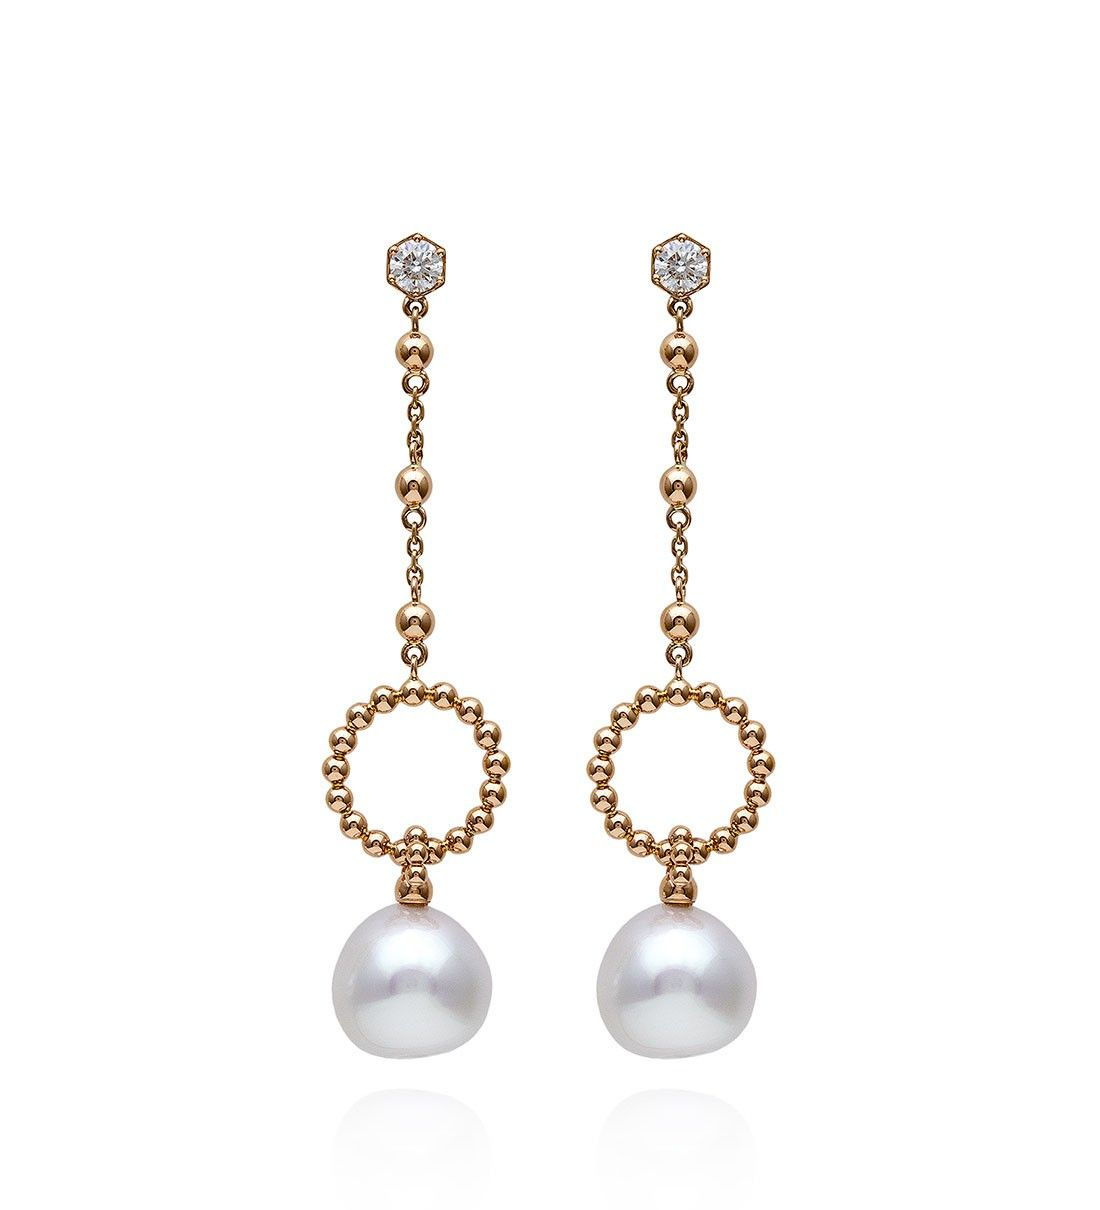 6ec9983a02ecf Circus Rose Gold South Sea Pearl Drop Earrings. New design in 18ct ...